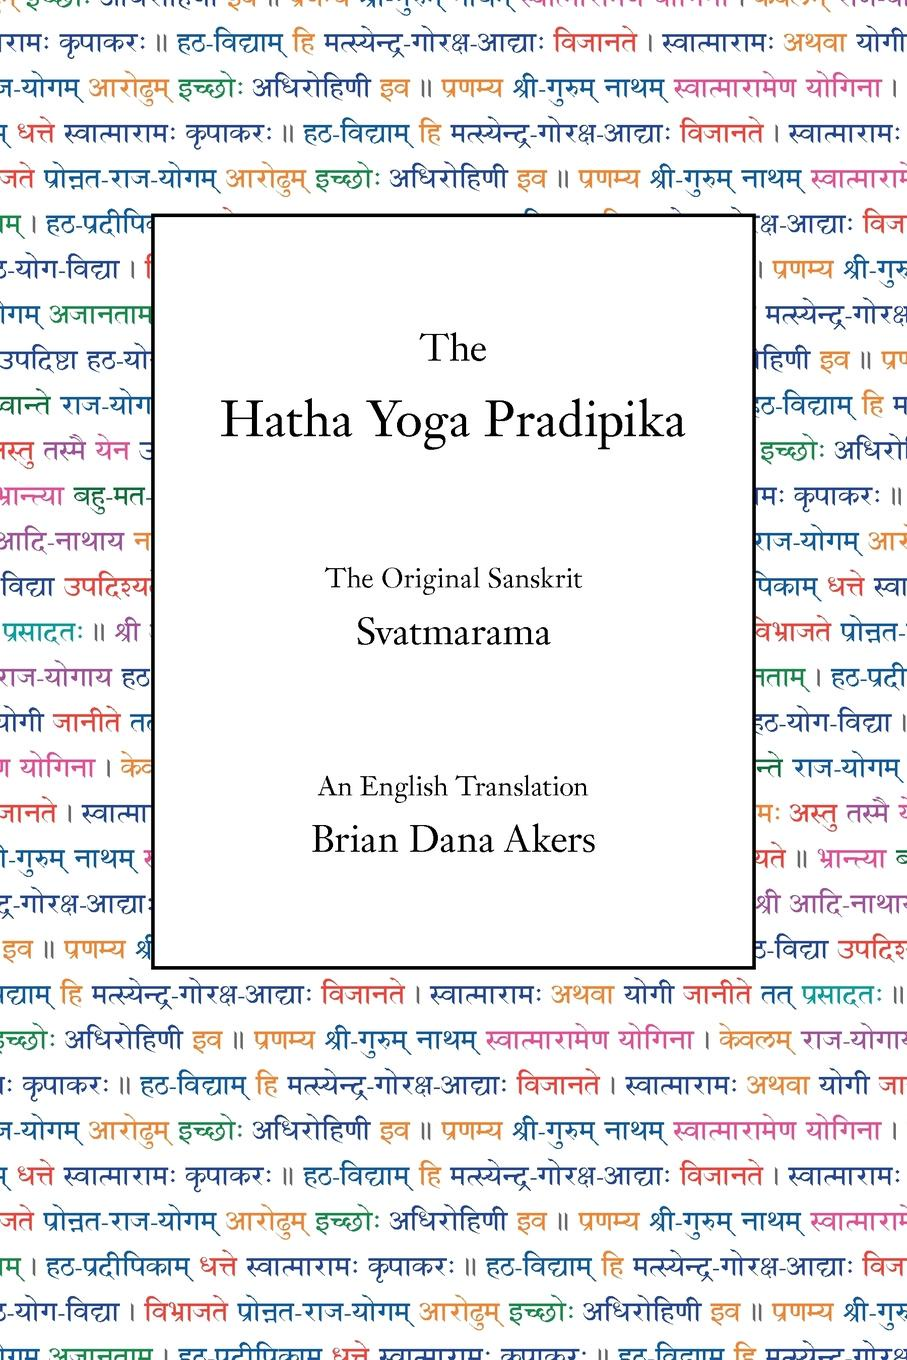 Svatmarama, Brian Dana Akers The Hatha Yoga Pradipika. The Original Sanskrit and an English Translation фитнес блоки hatha ht ygz yoga eva